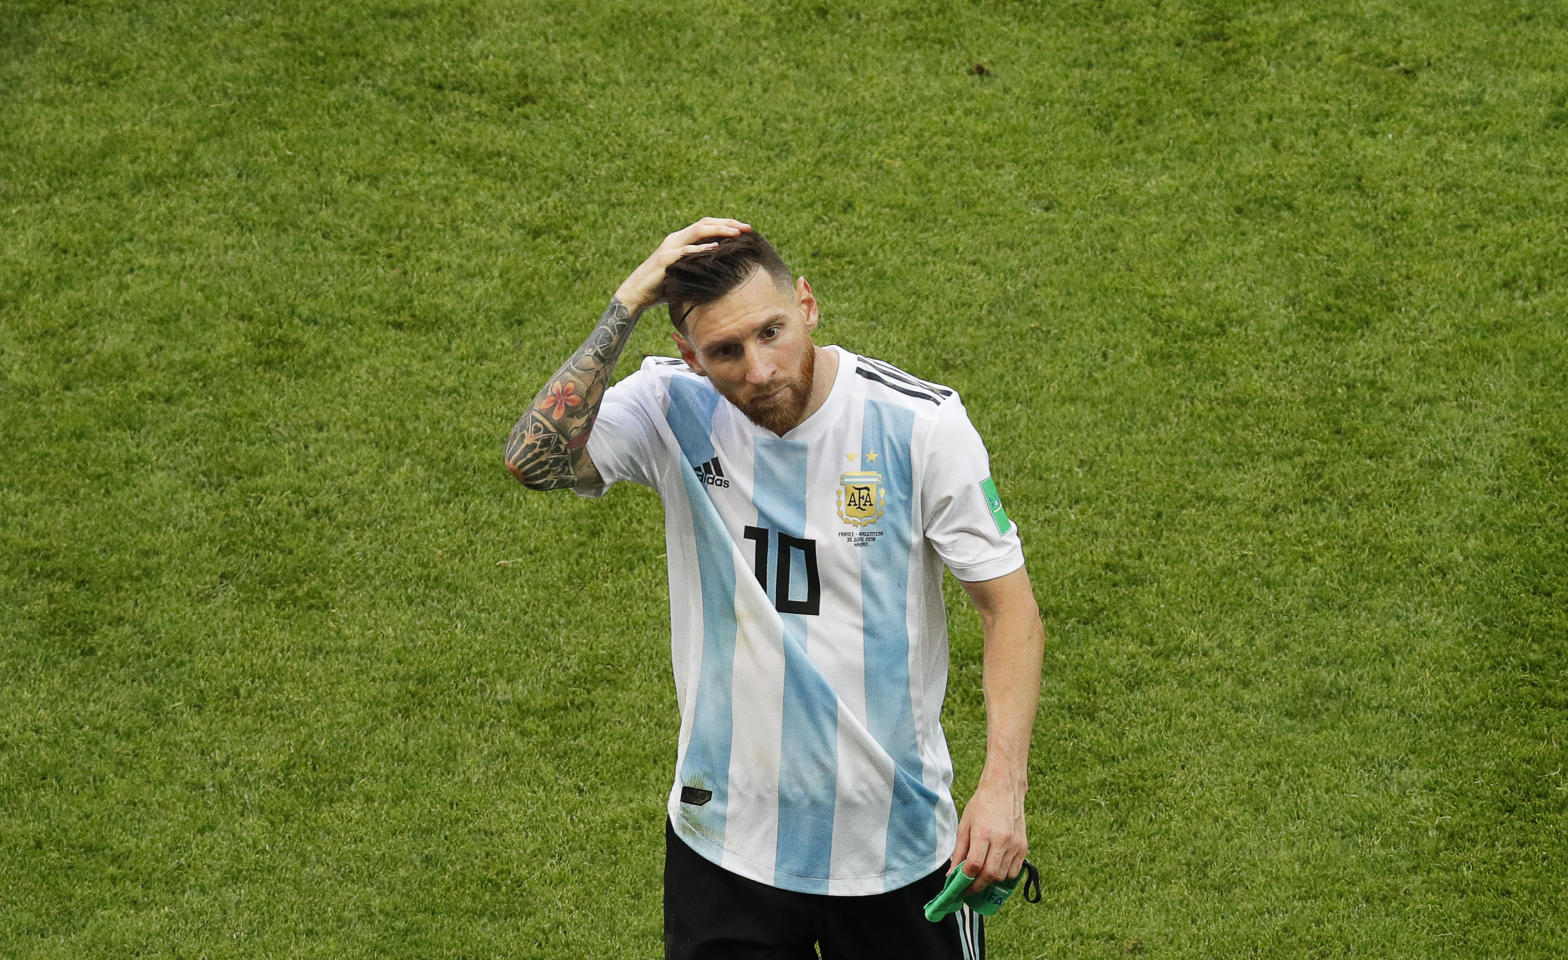 half off 8e2d7 419e3 What the future holds for Messi after Argentina World C...